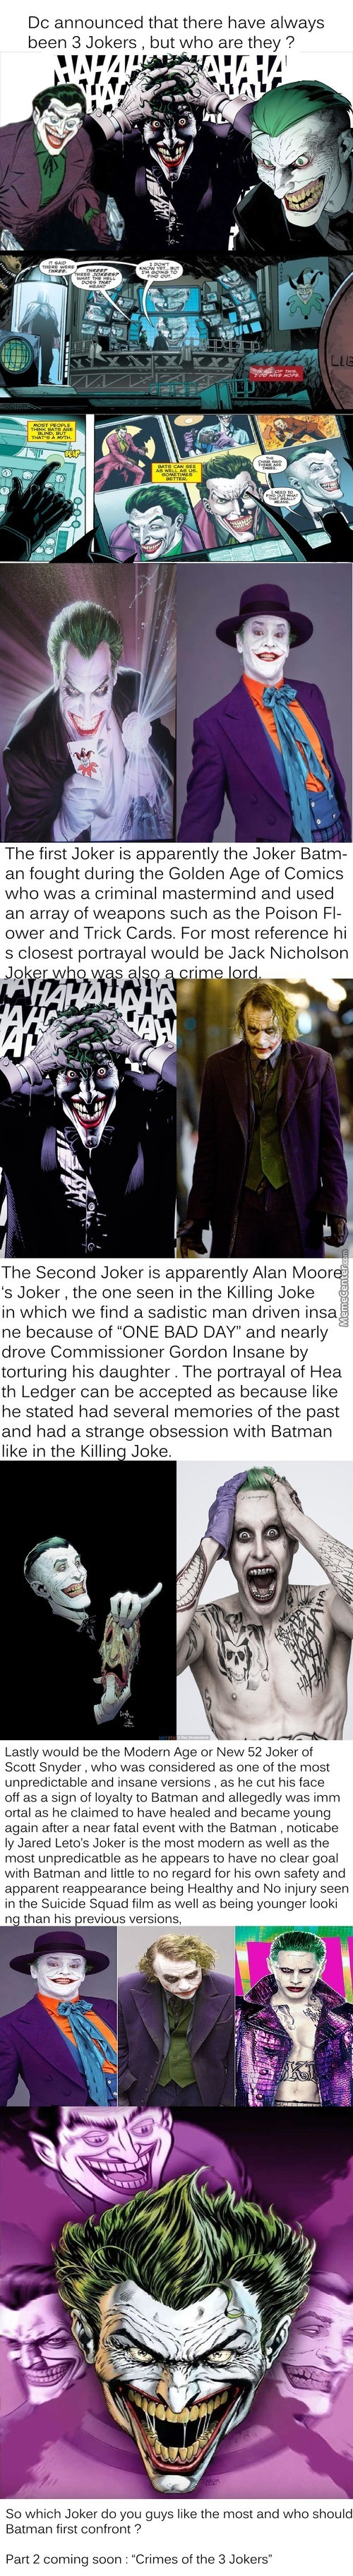 Who Are The 3 Jokers , Batman Has Been Fighting All These Years ?